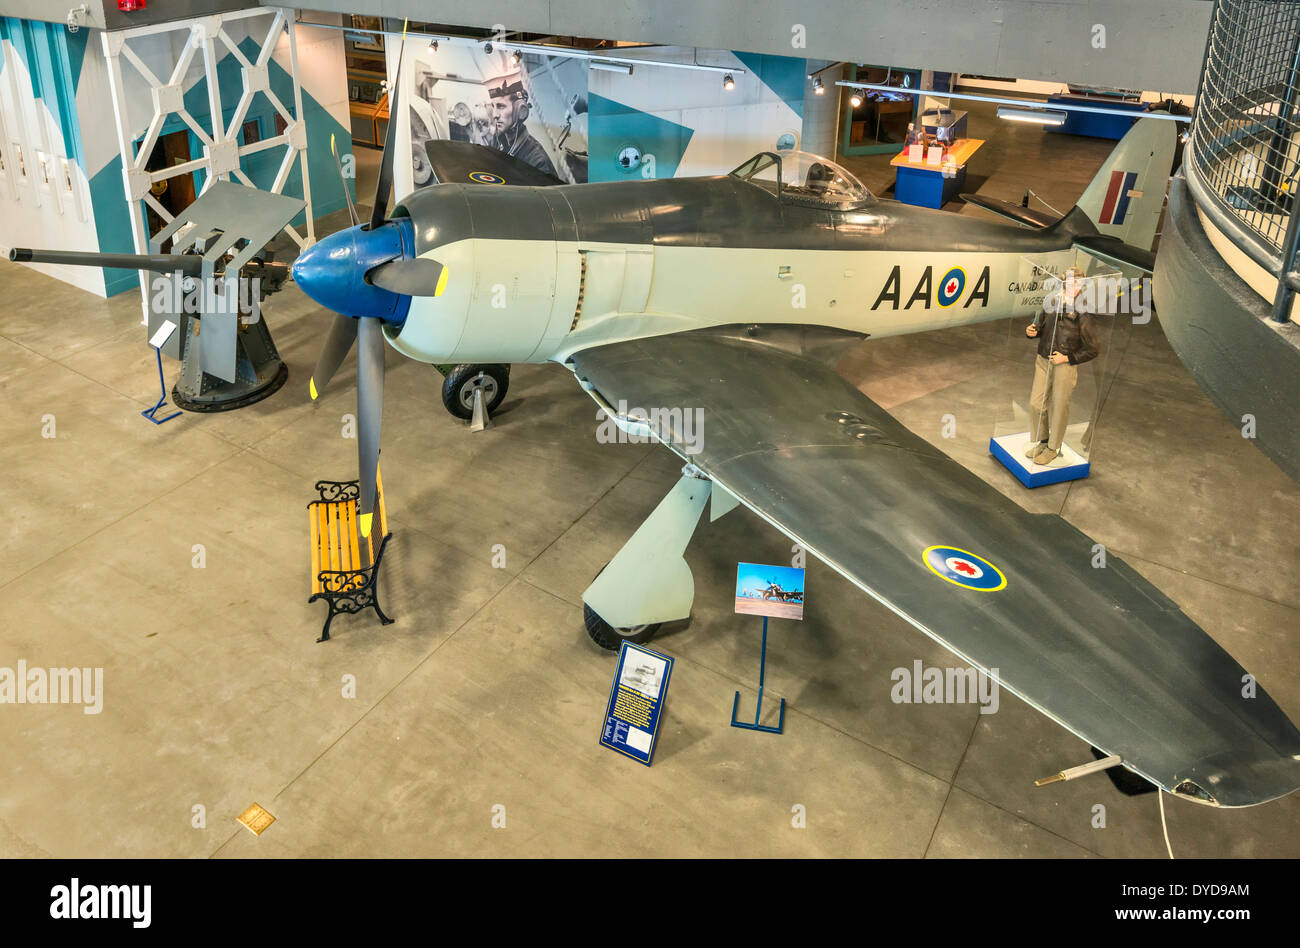 Hawker Sea Fury fighter aircraft at Naval Museum of Alberta section of The Military Museums in Calgary, Alberta, - Stock Image